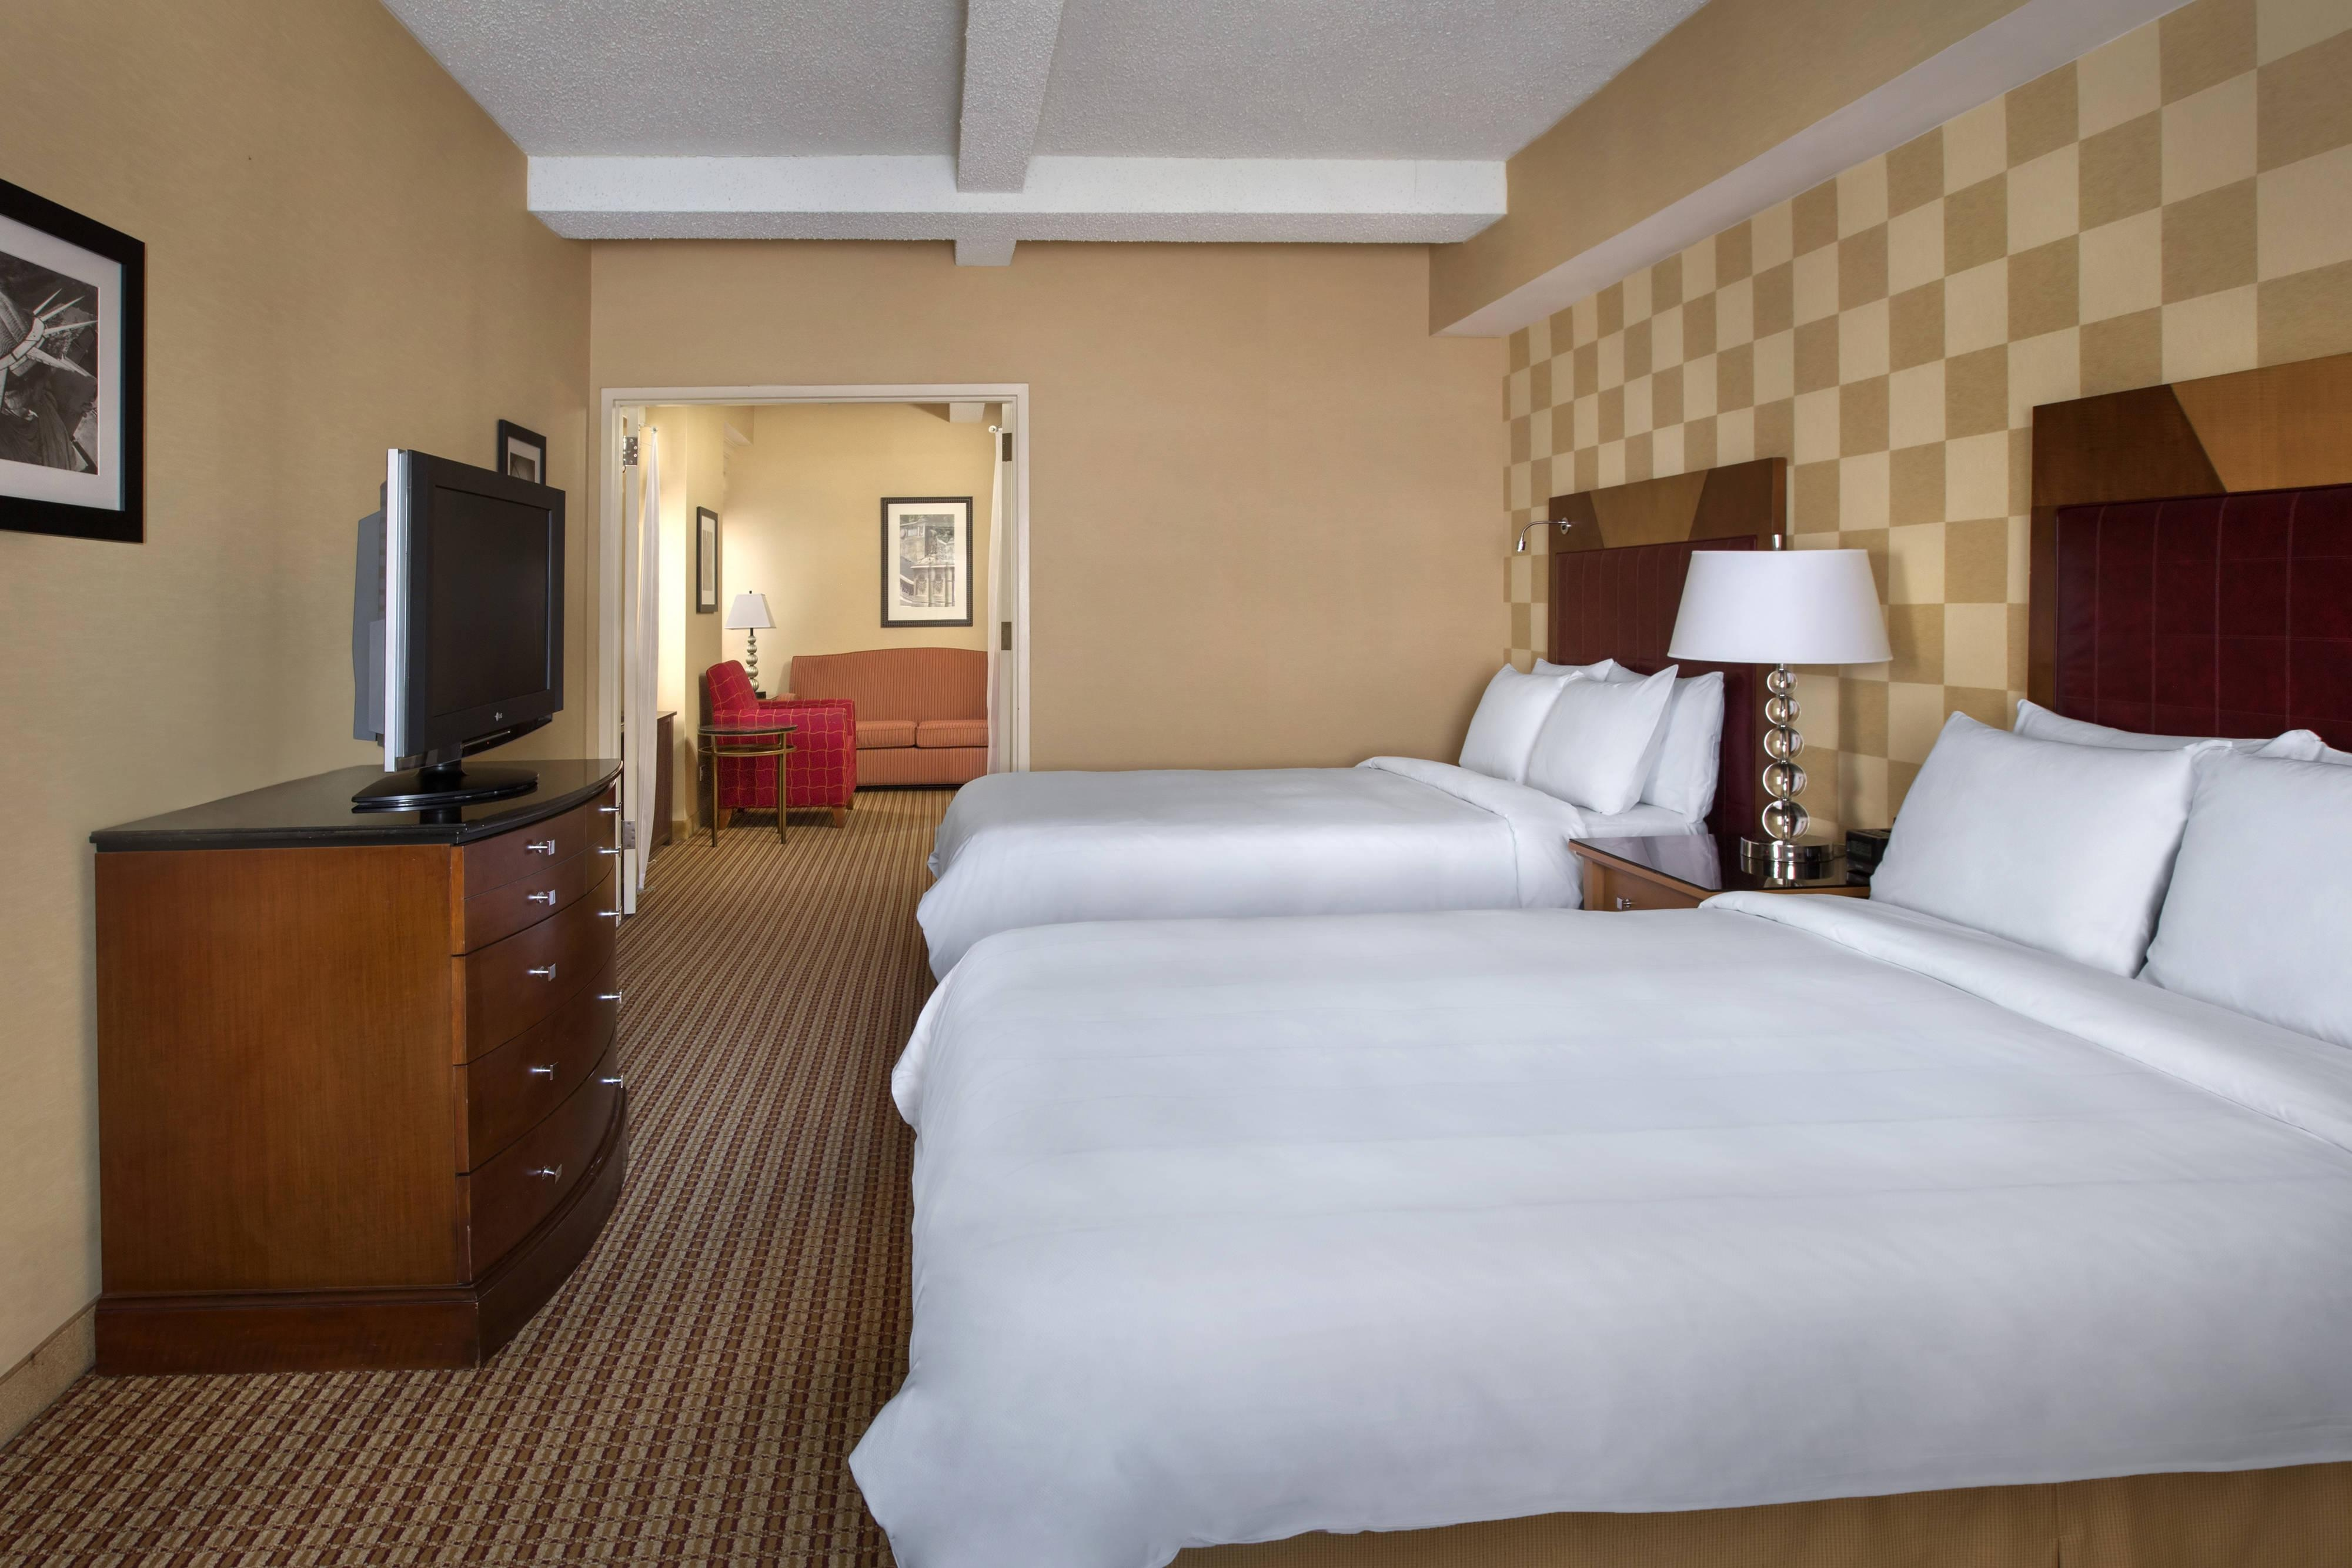 Junior Suite - Bedroom